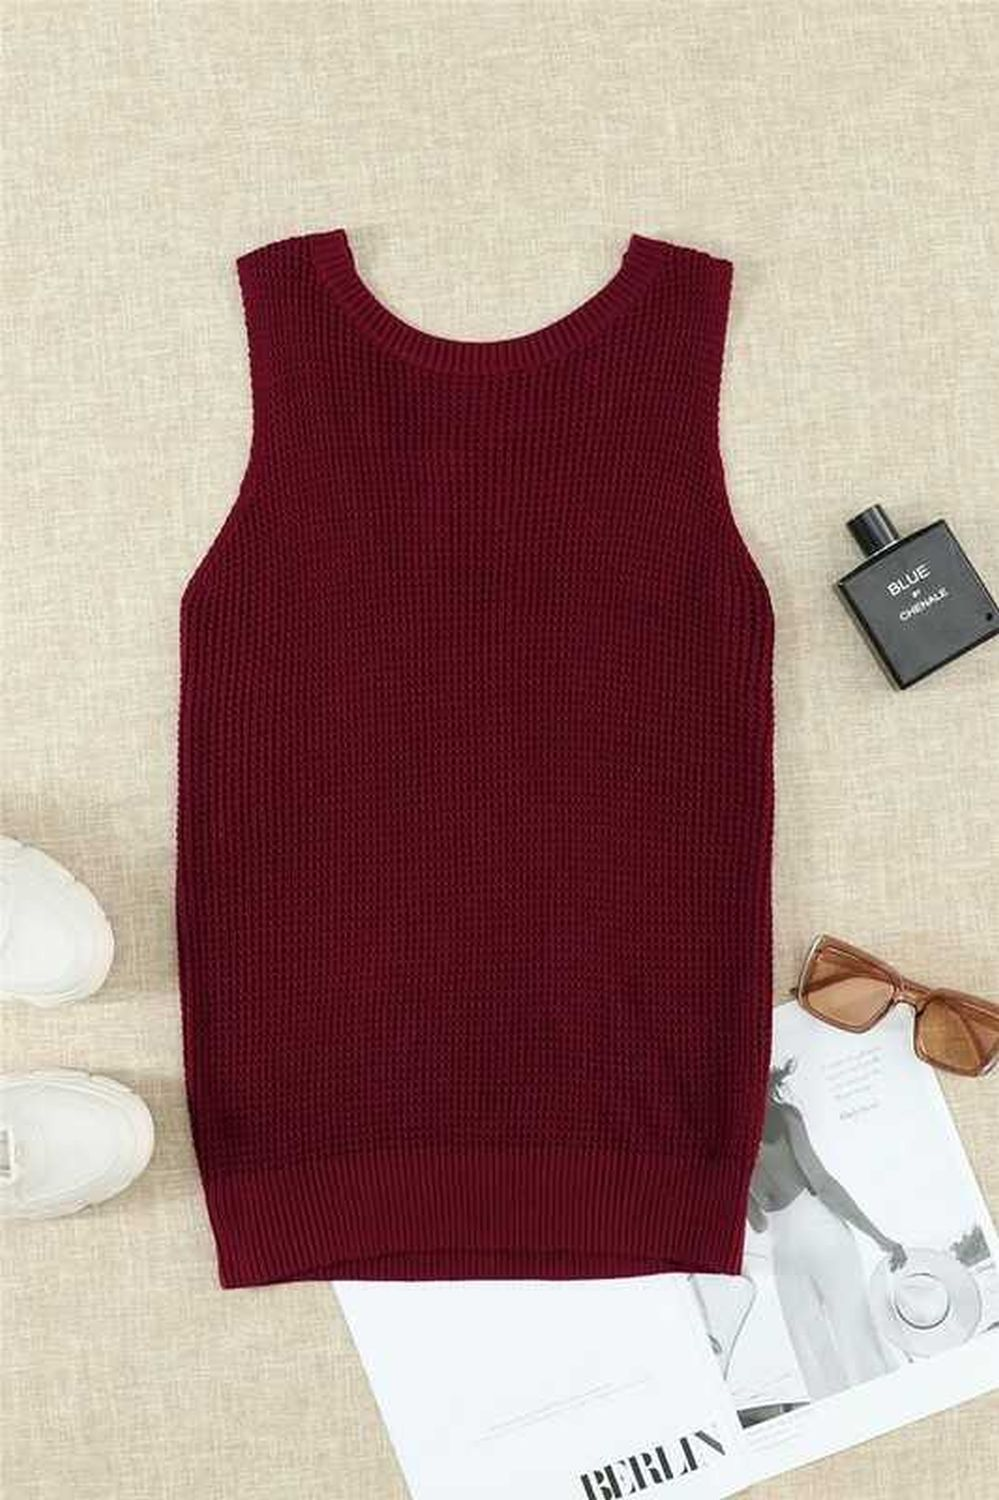 Crisscross Hollow Out Knit Tank Top